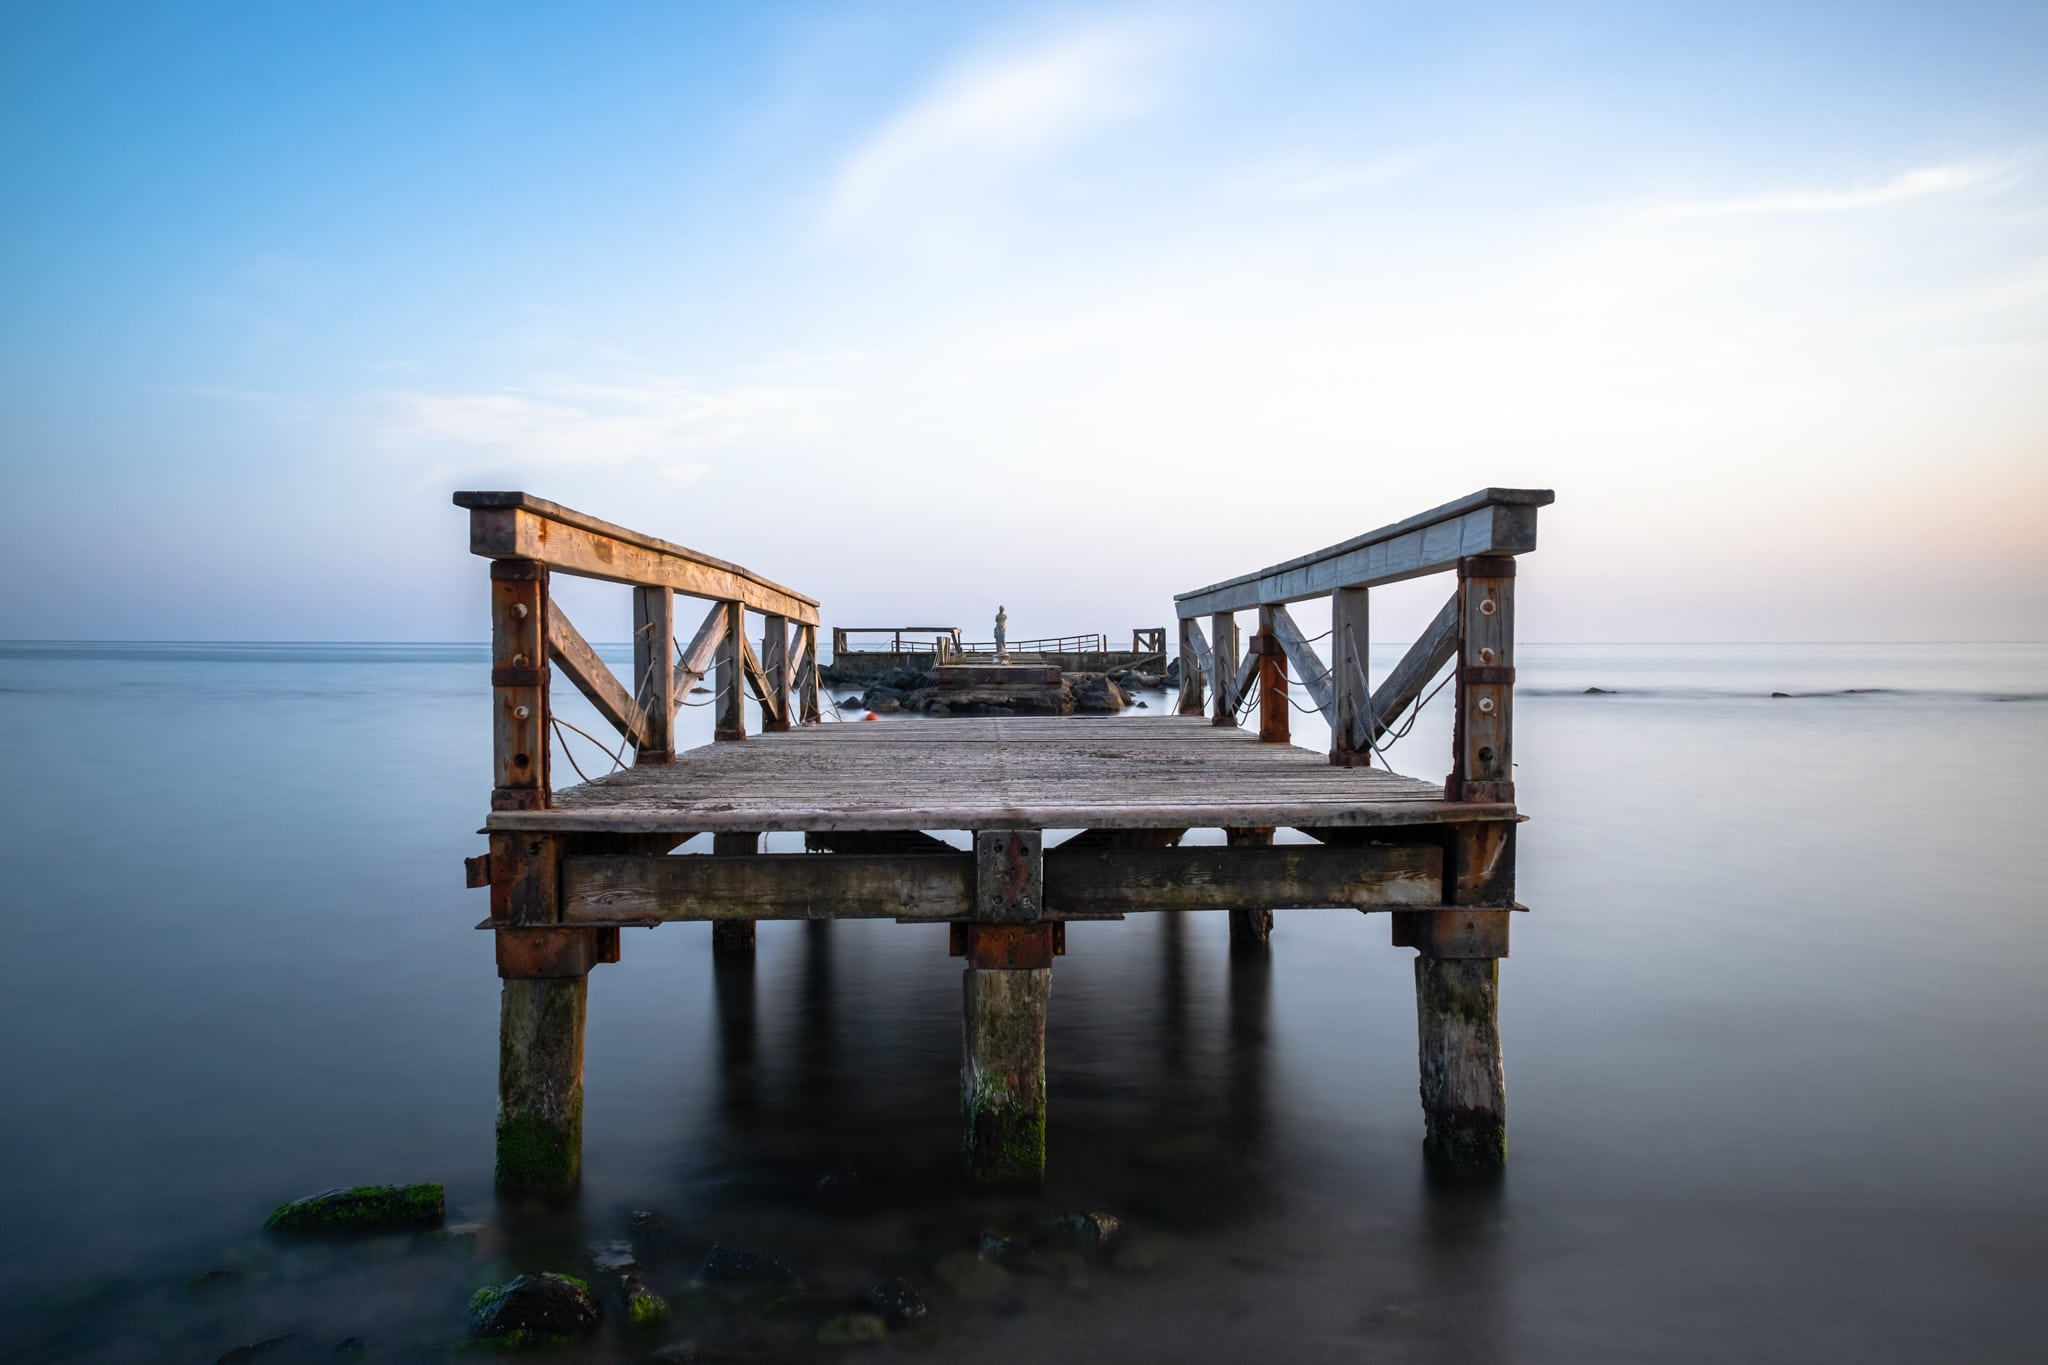 Long exposure of Fishermen Pier. Lido (Shore) di Ostia. Rome, Italy. Sea water and clouds look smooth and silky.